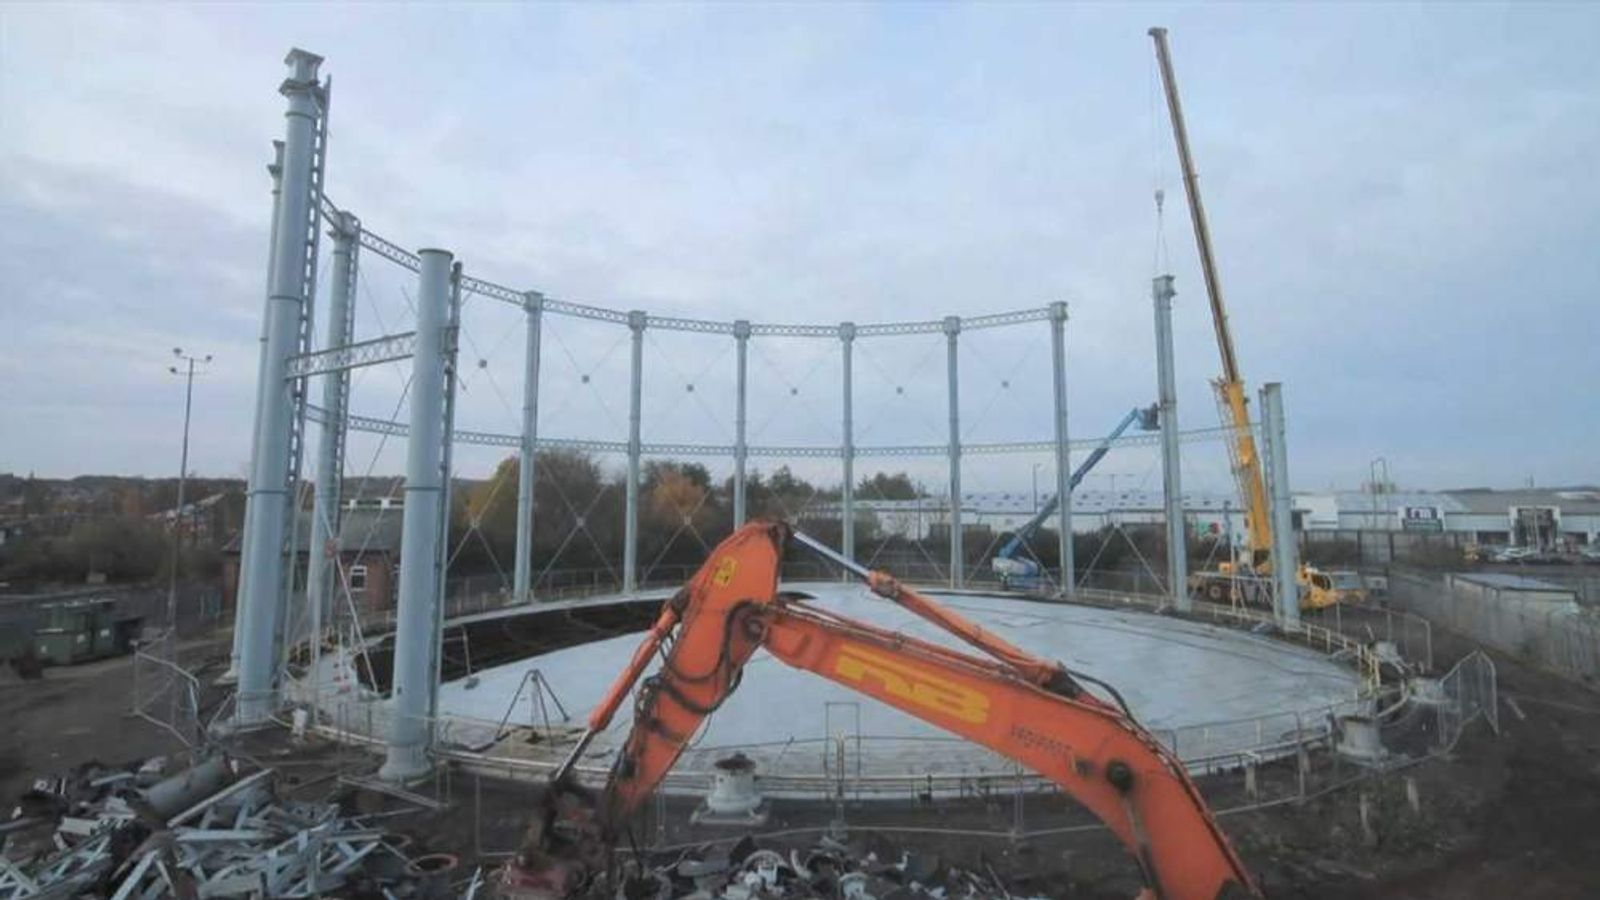 Timelapse Footage Of A Gas Holder Being Dismantled